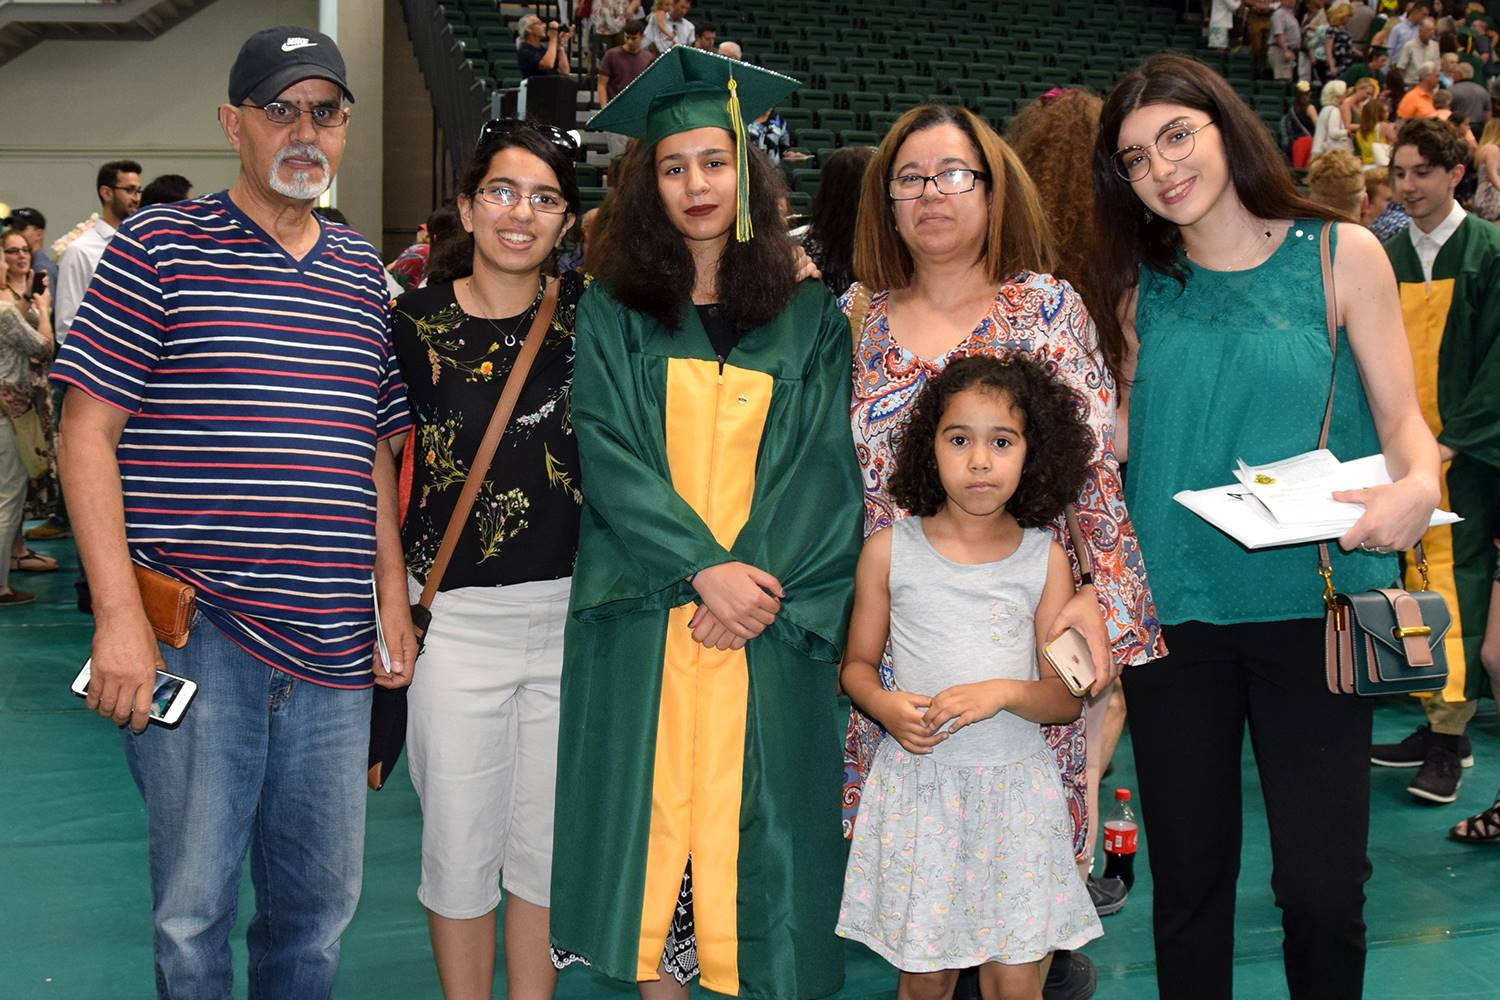 Another graduate stands for a family photo with her parents and three sisters after her Vestal High